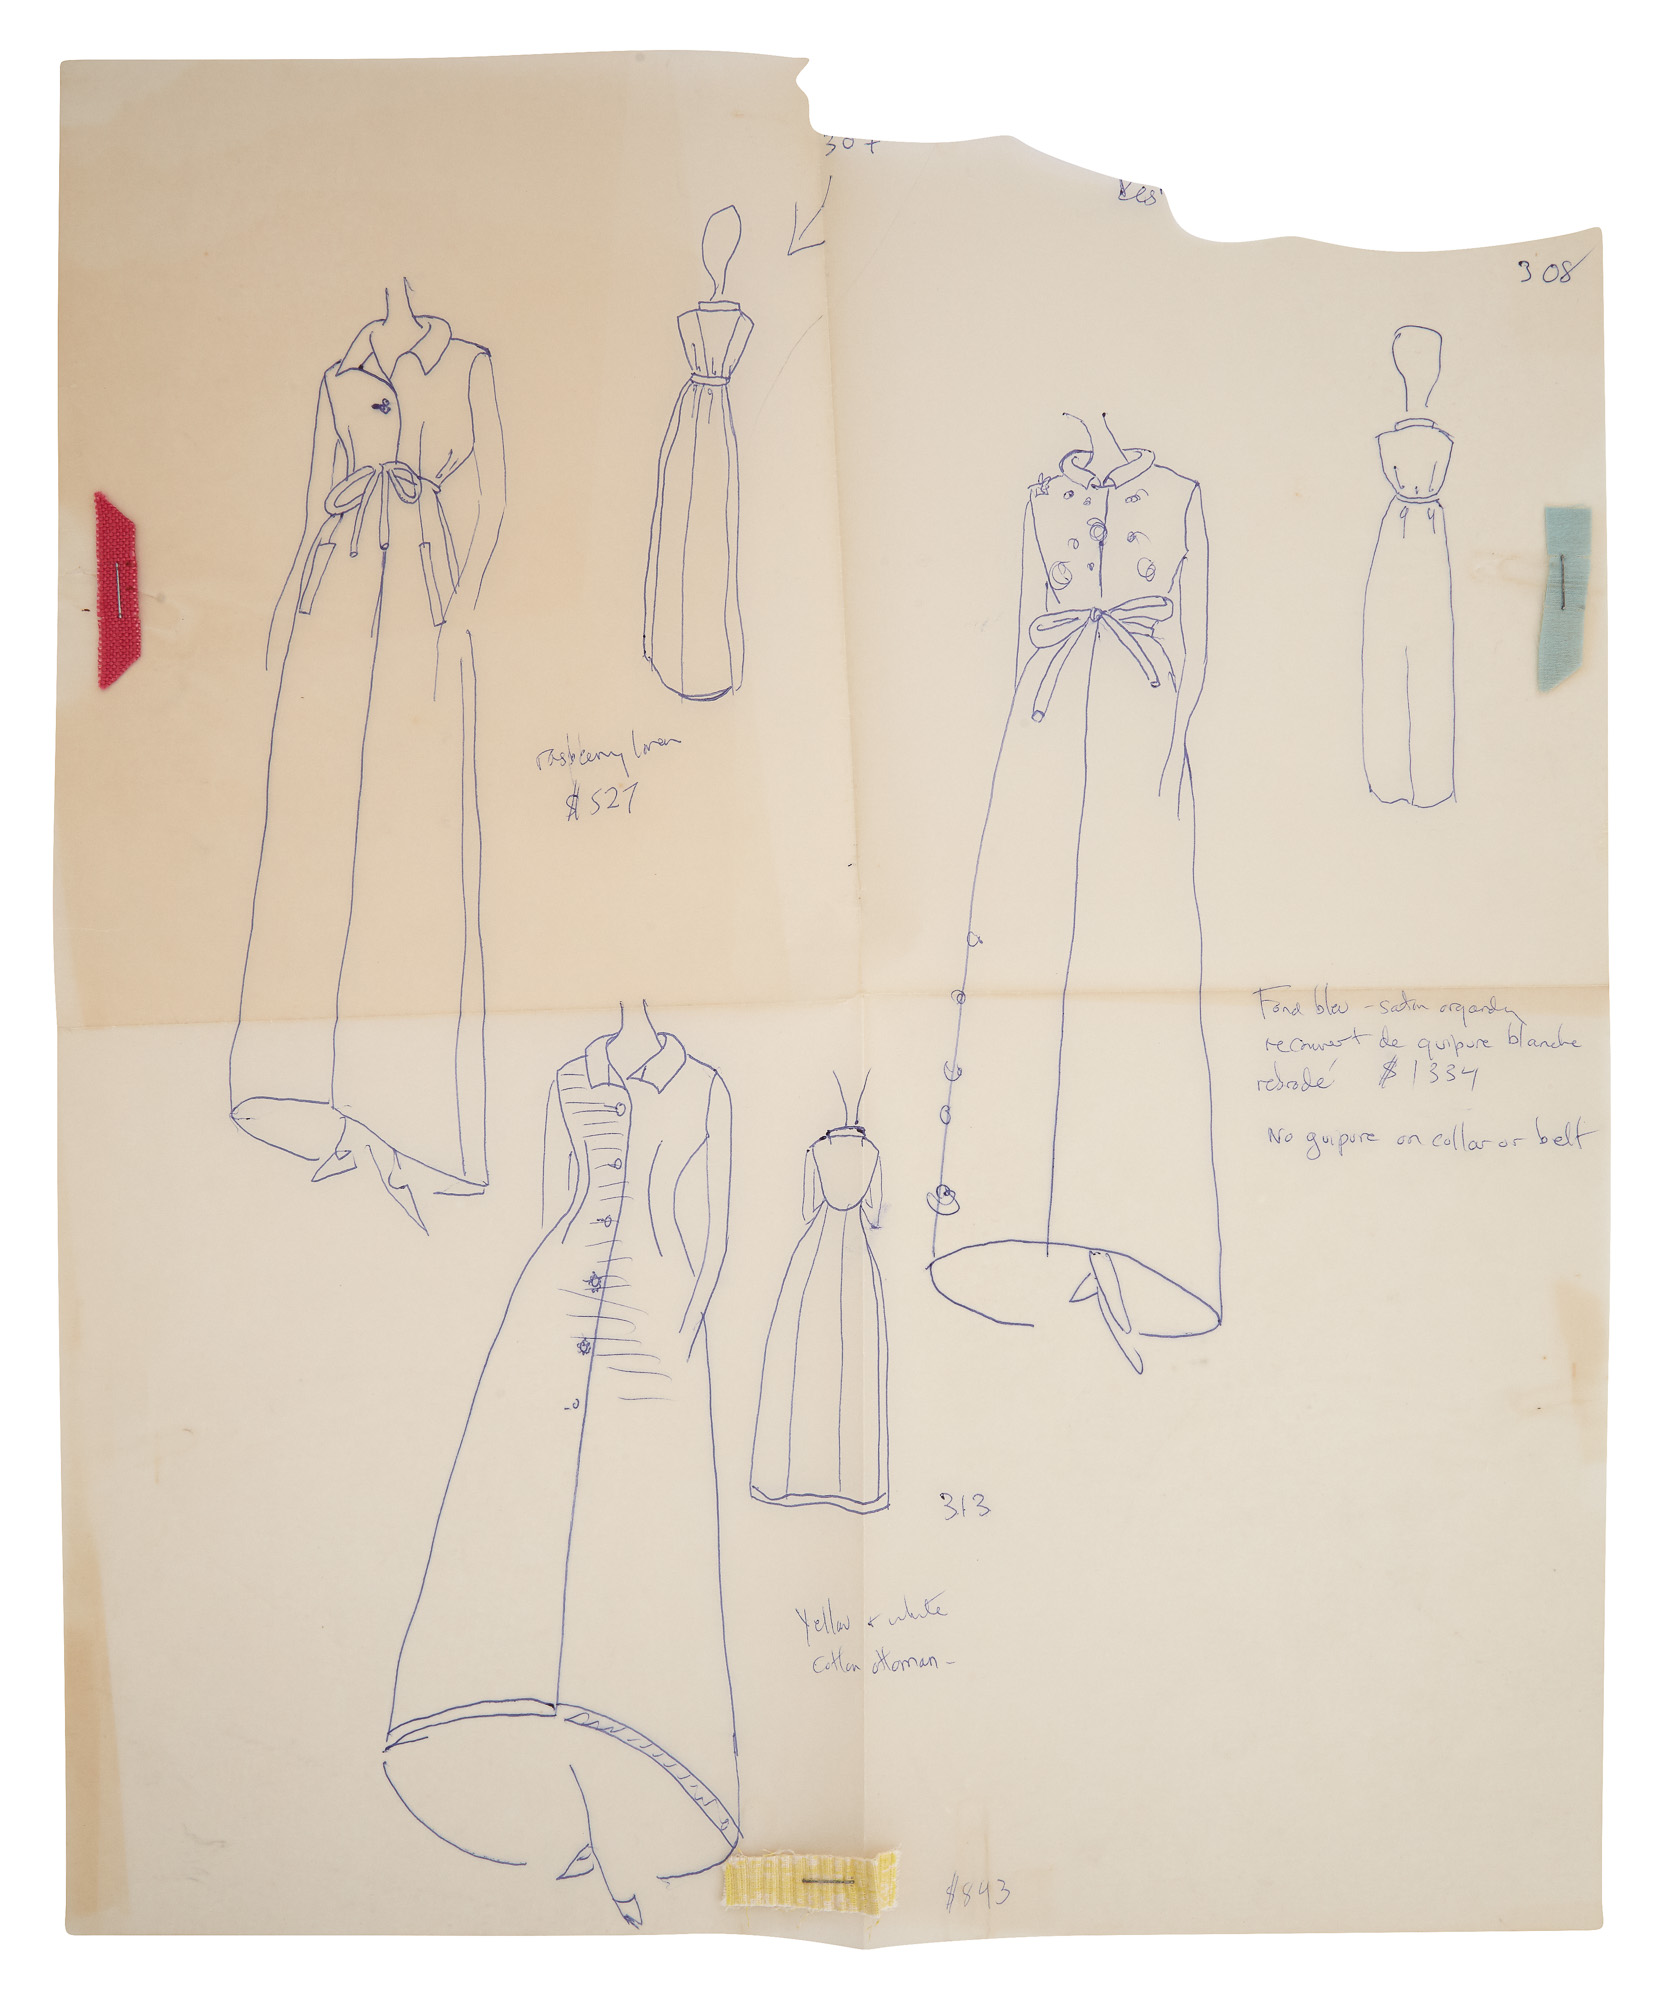 Lot image - [CASSINI-KENNEDY FASHIONS]  An important archive of original drawings, correspondence, annotated clippings, and workshop ephemera related to the development of Cassinis fashions for Mrs. Kennedy as First Lady.